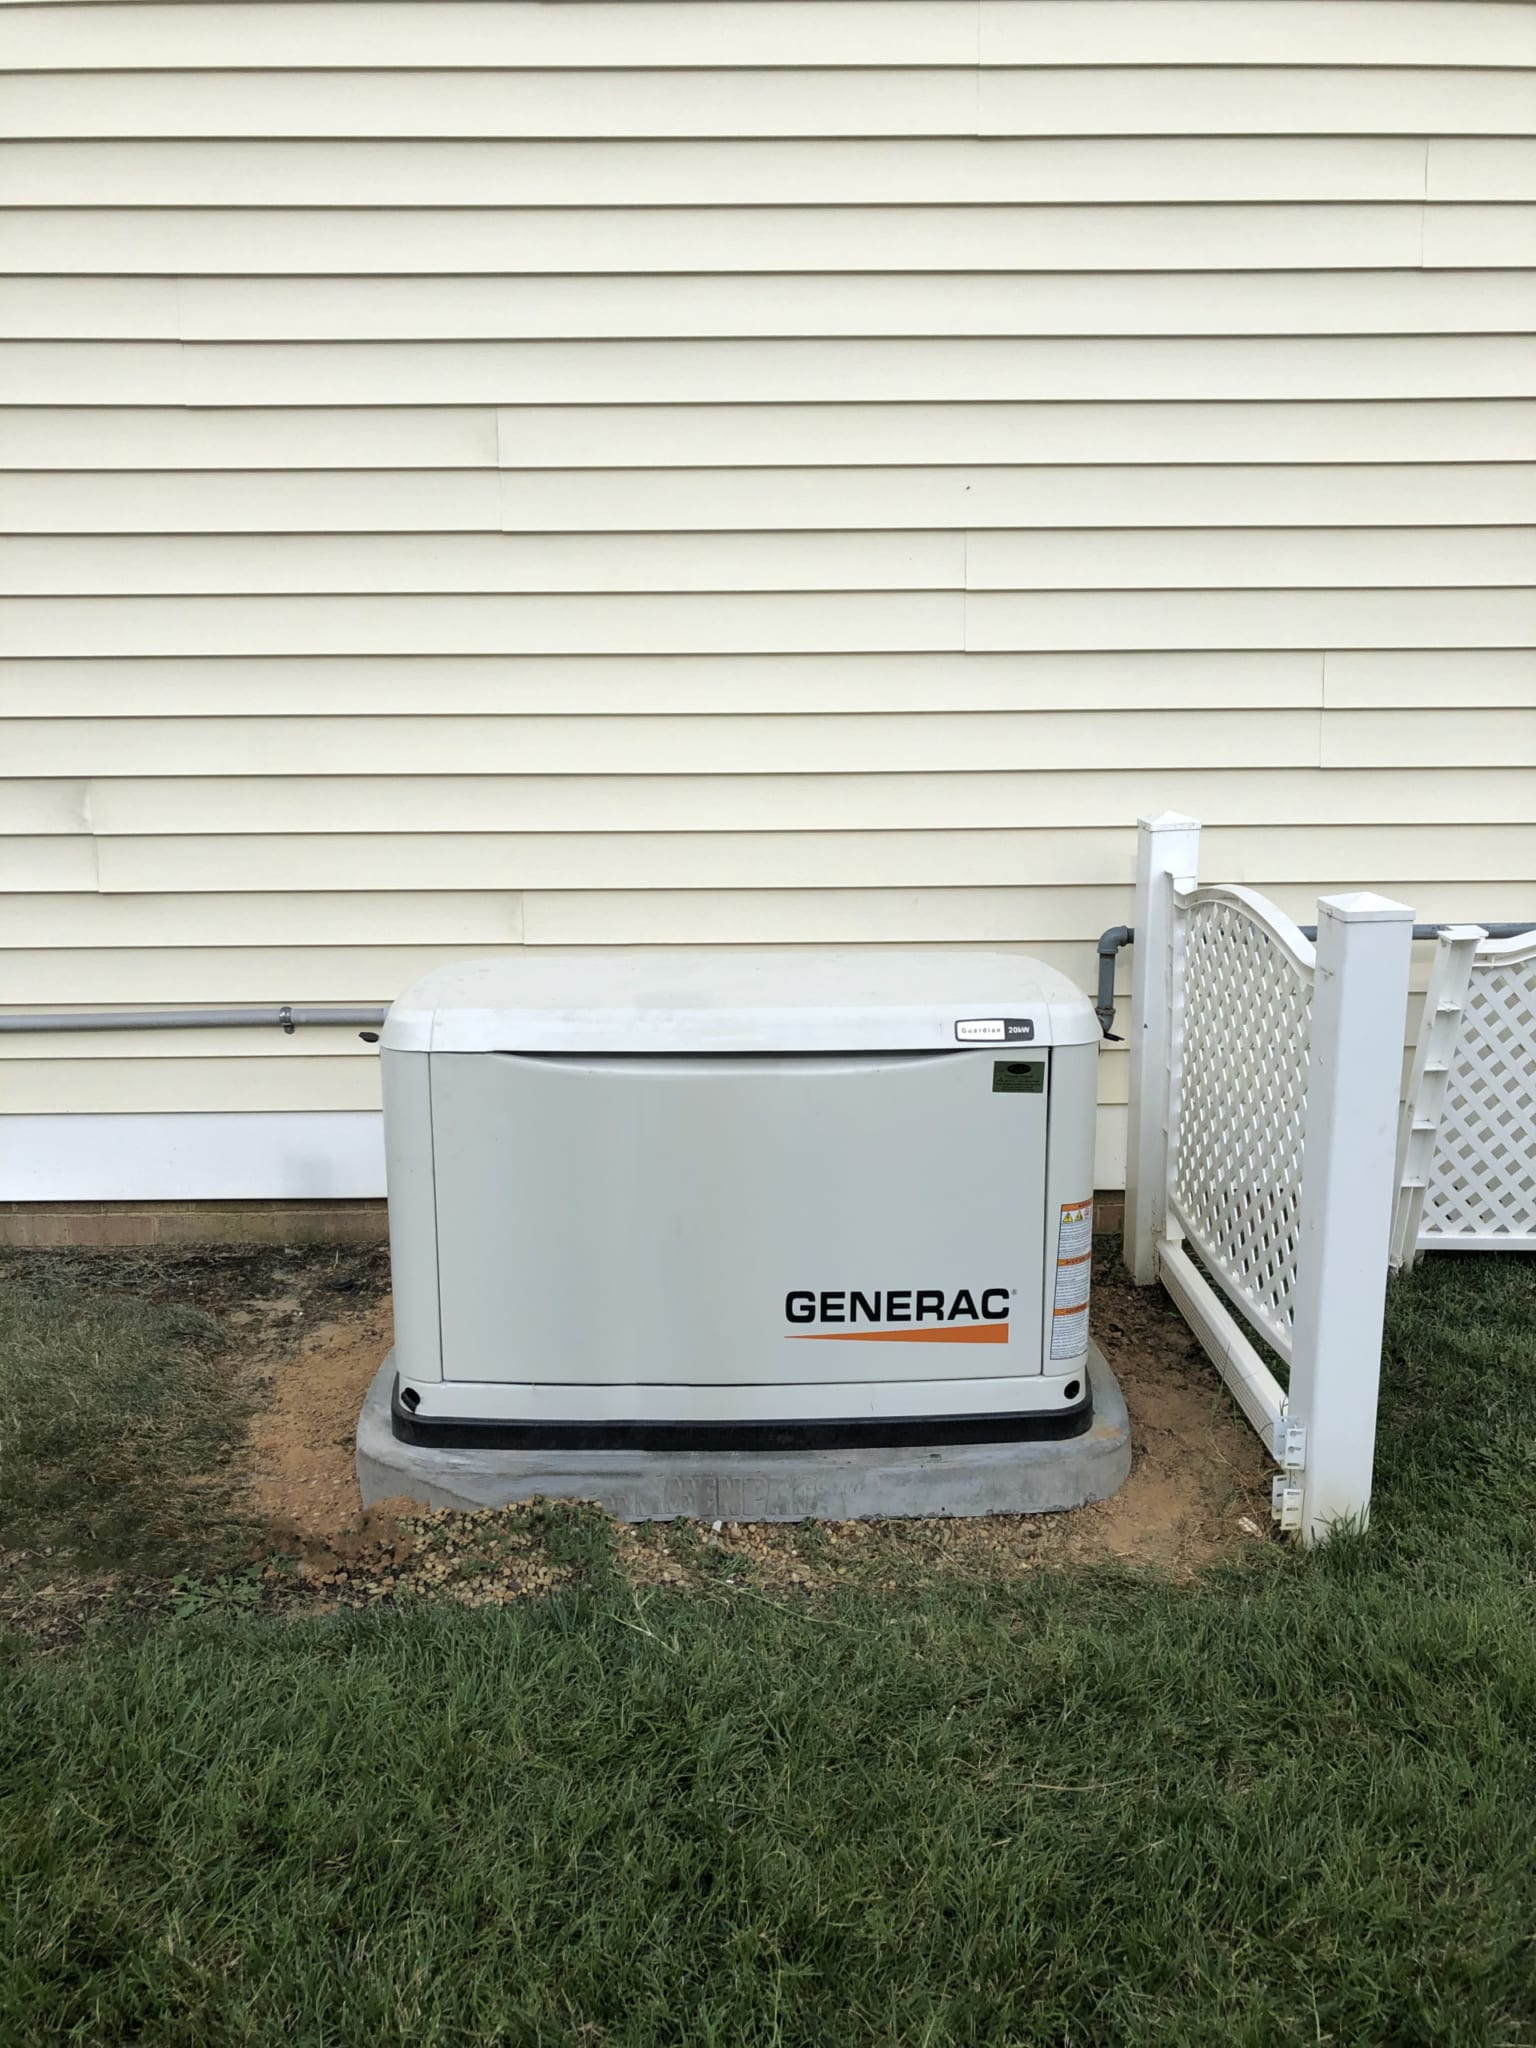 7.8.20 Hanover Generac Automatic Standby Generator